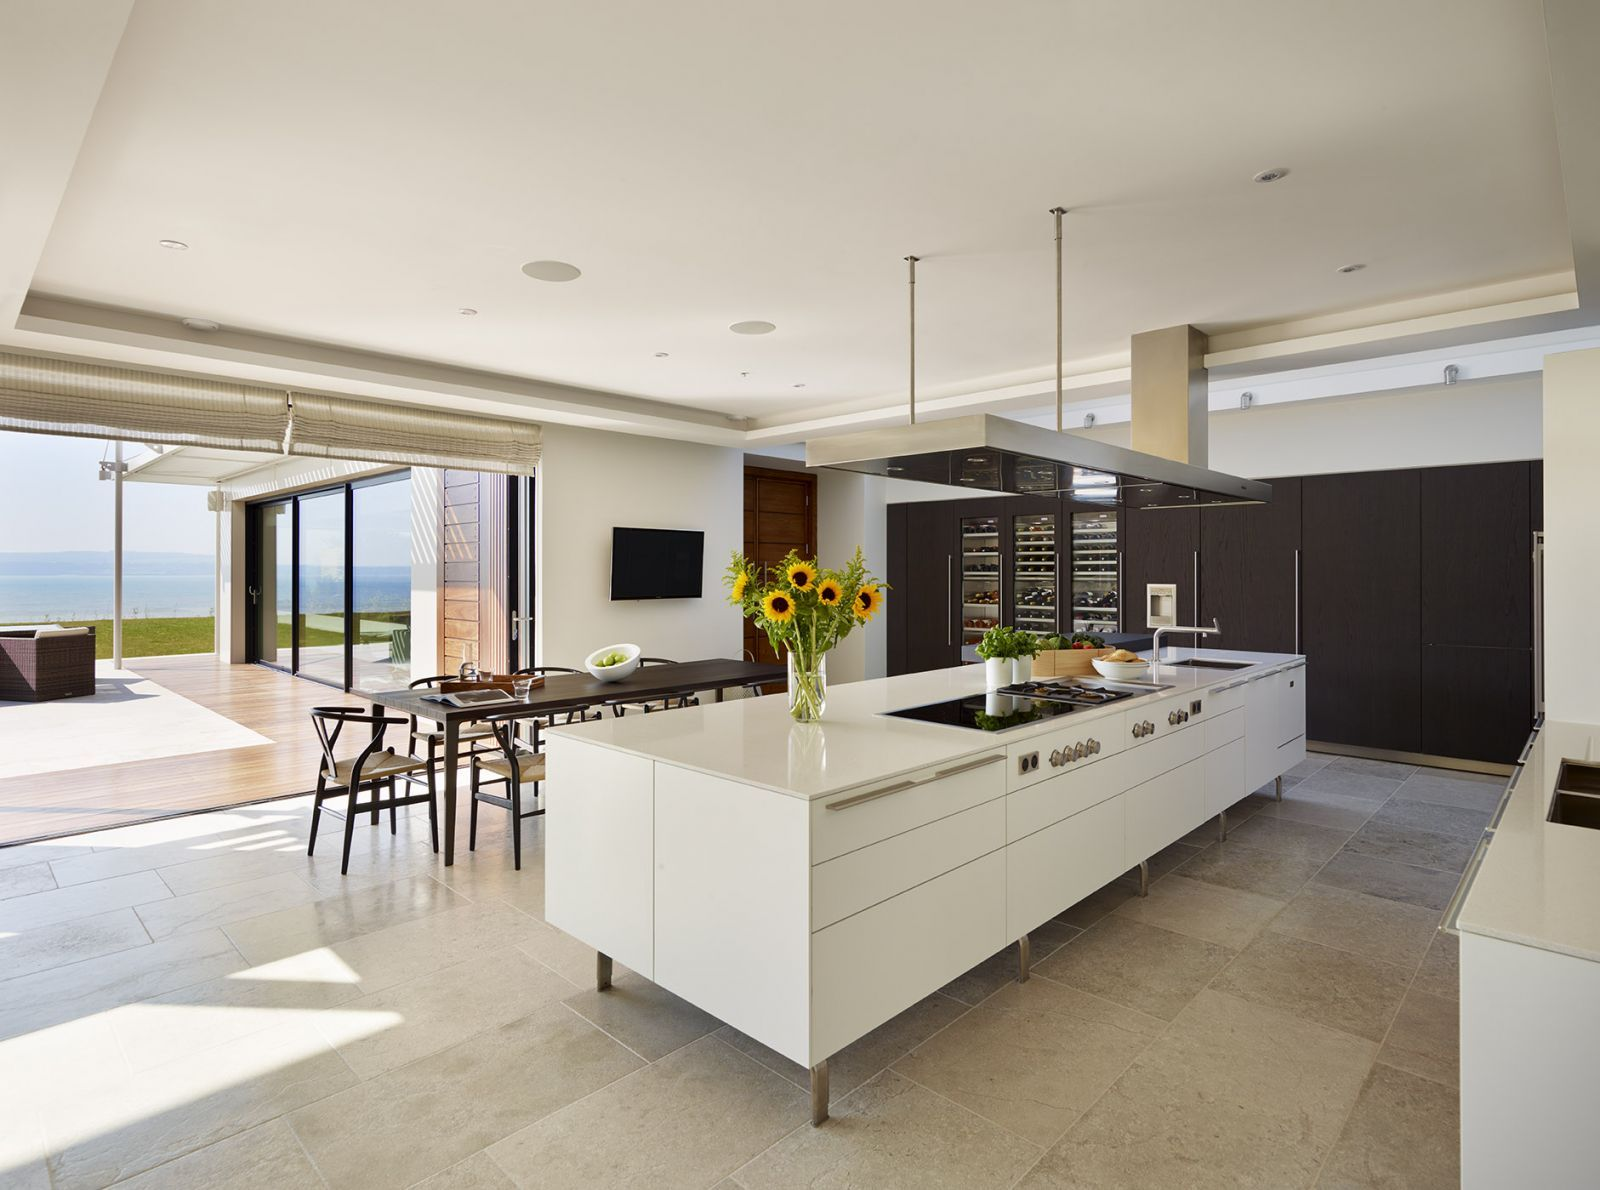 Bulthaup Kitchen Island Part - 18: The Bulthaup Kitchen Designed By Sapphire Living Space Works Perfectly In  This Coastal Devon Home.